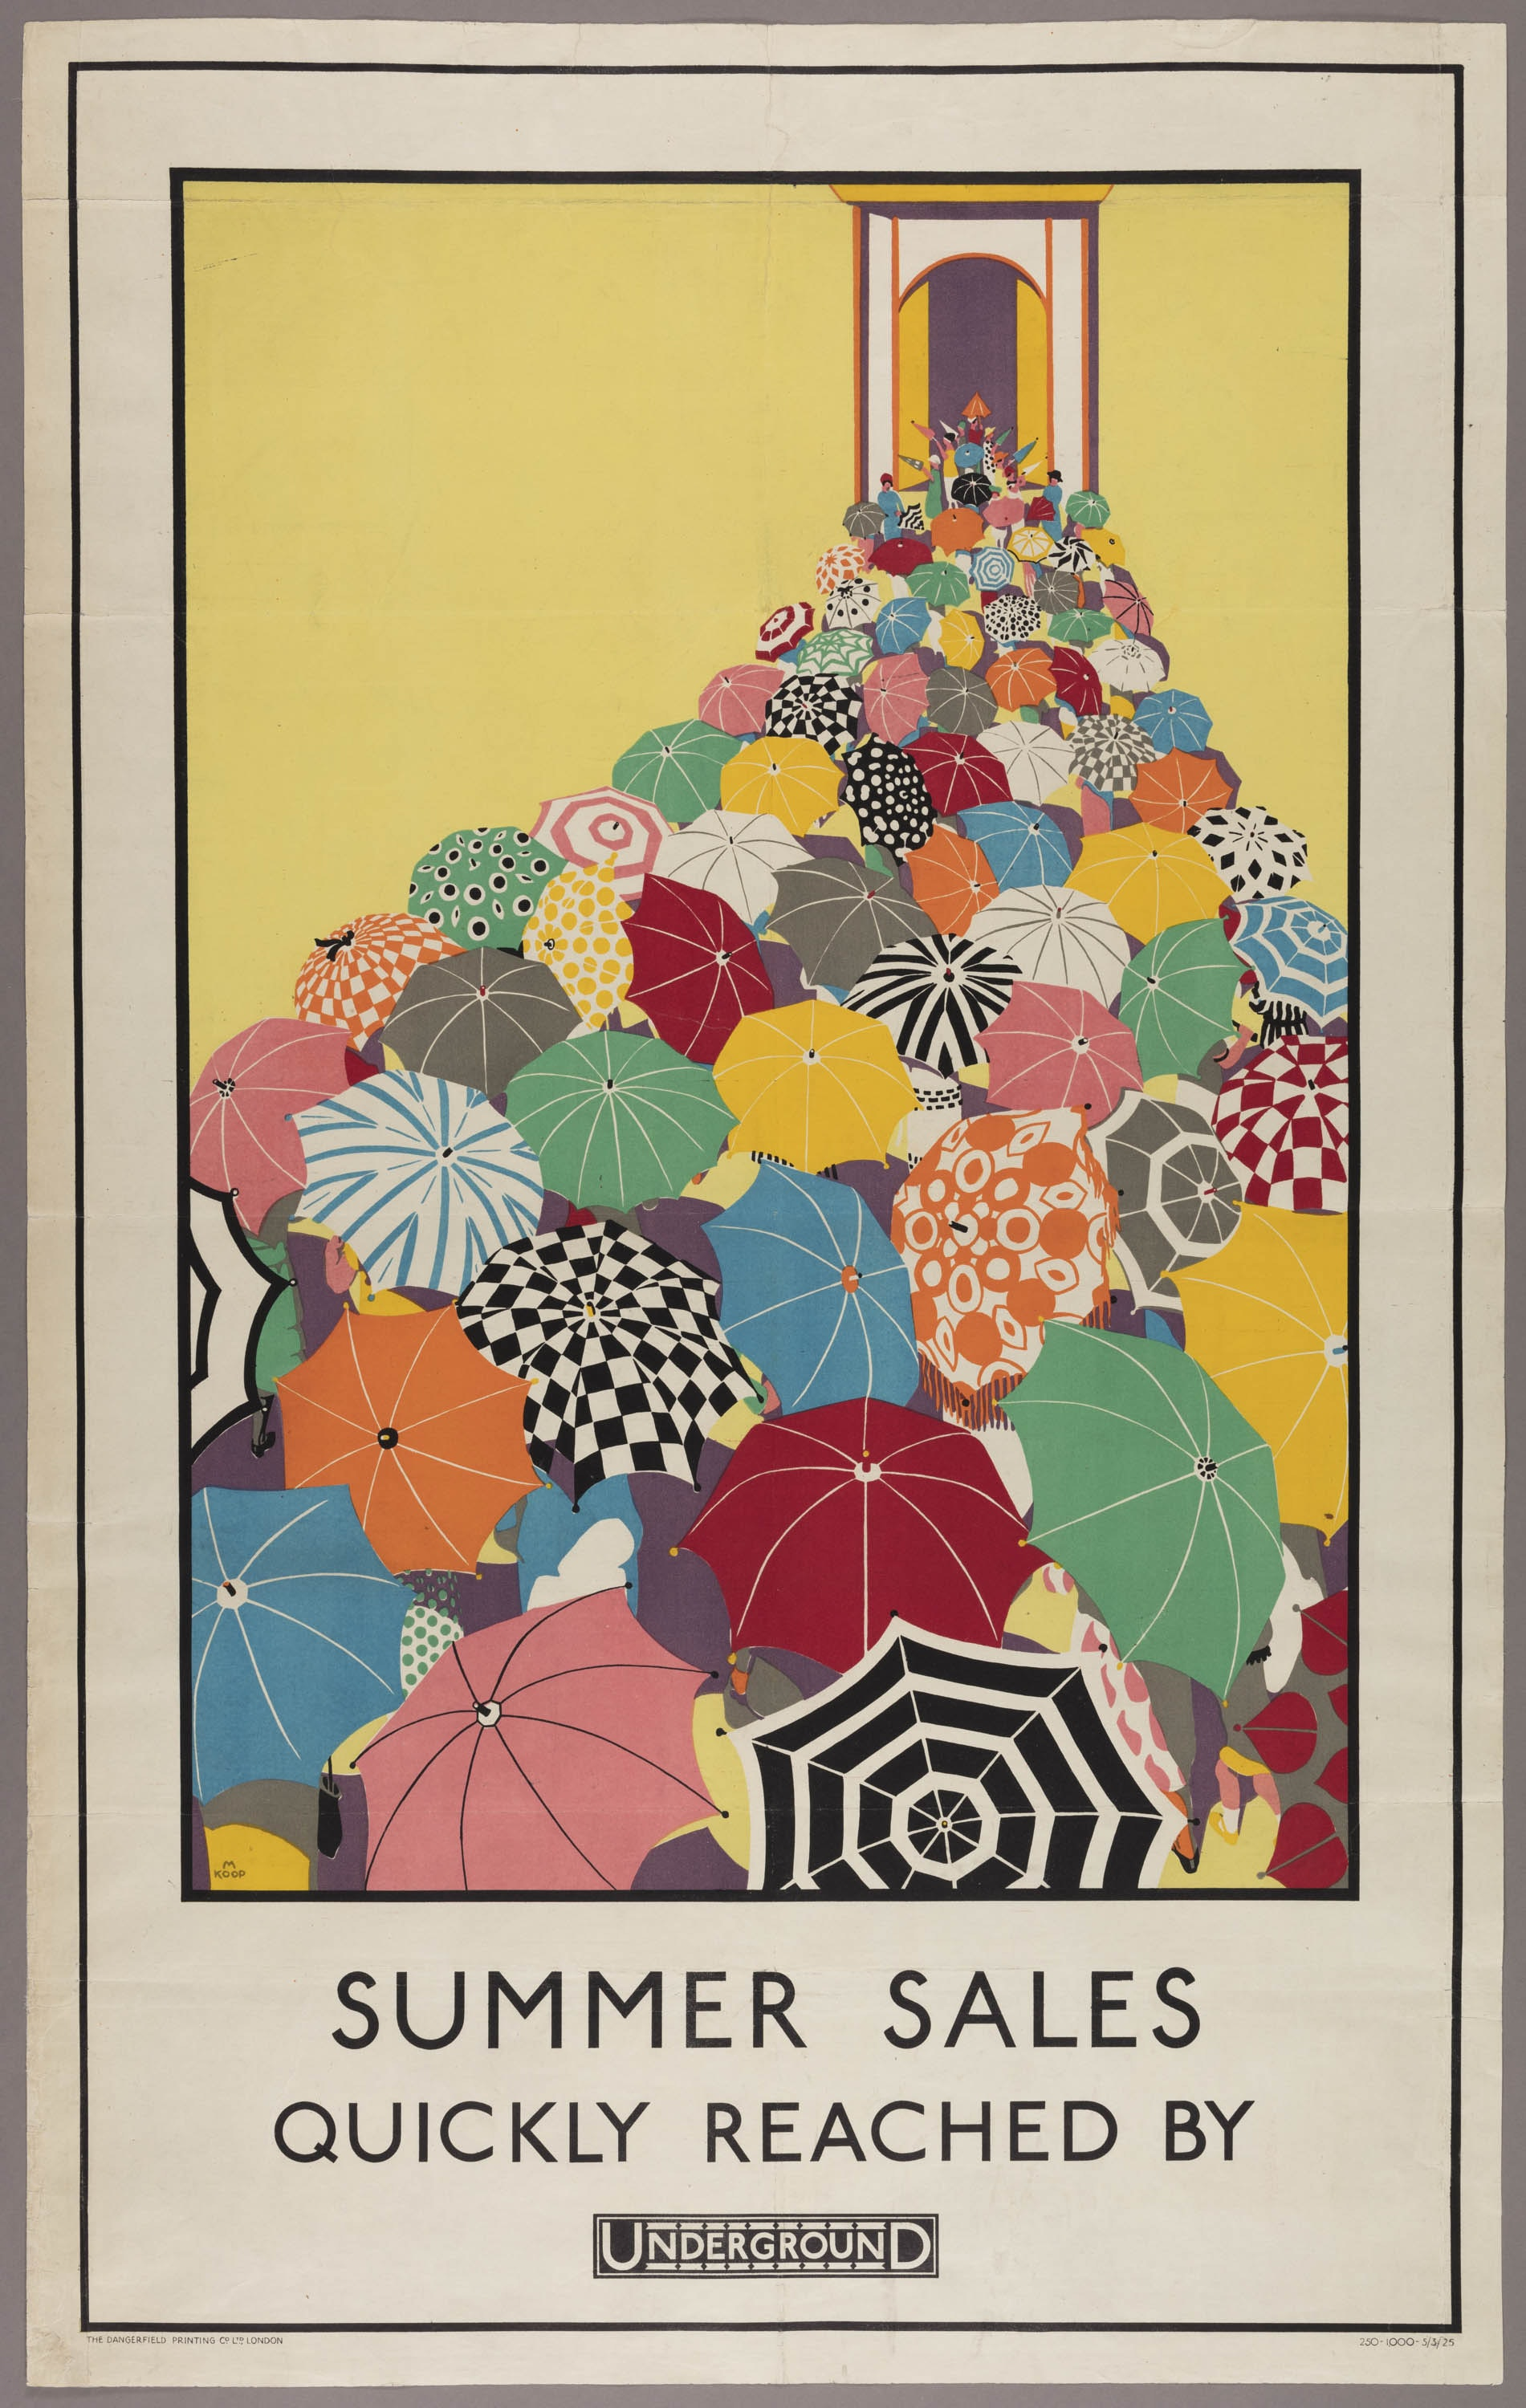 A poster for the London Underground that depicts colorful and patterned umbrellas on a bright yellow background.